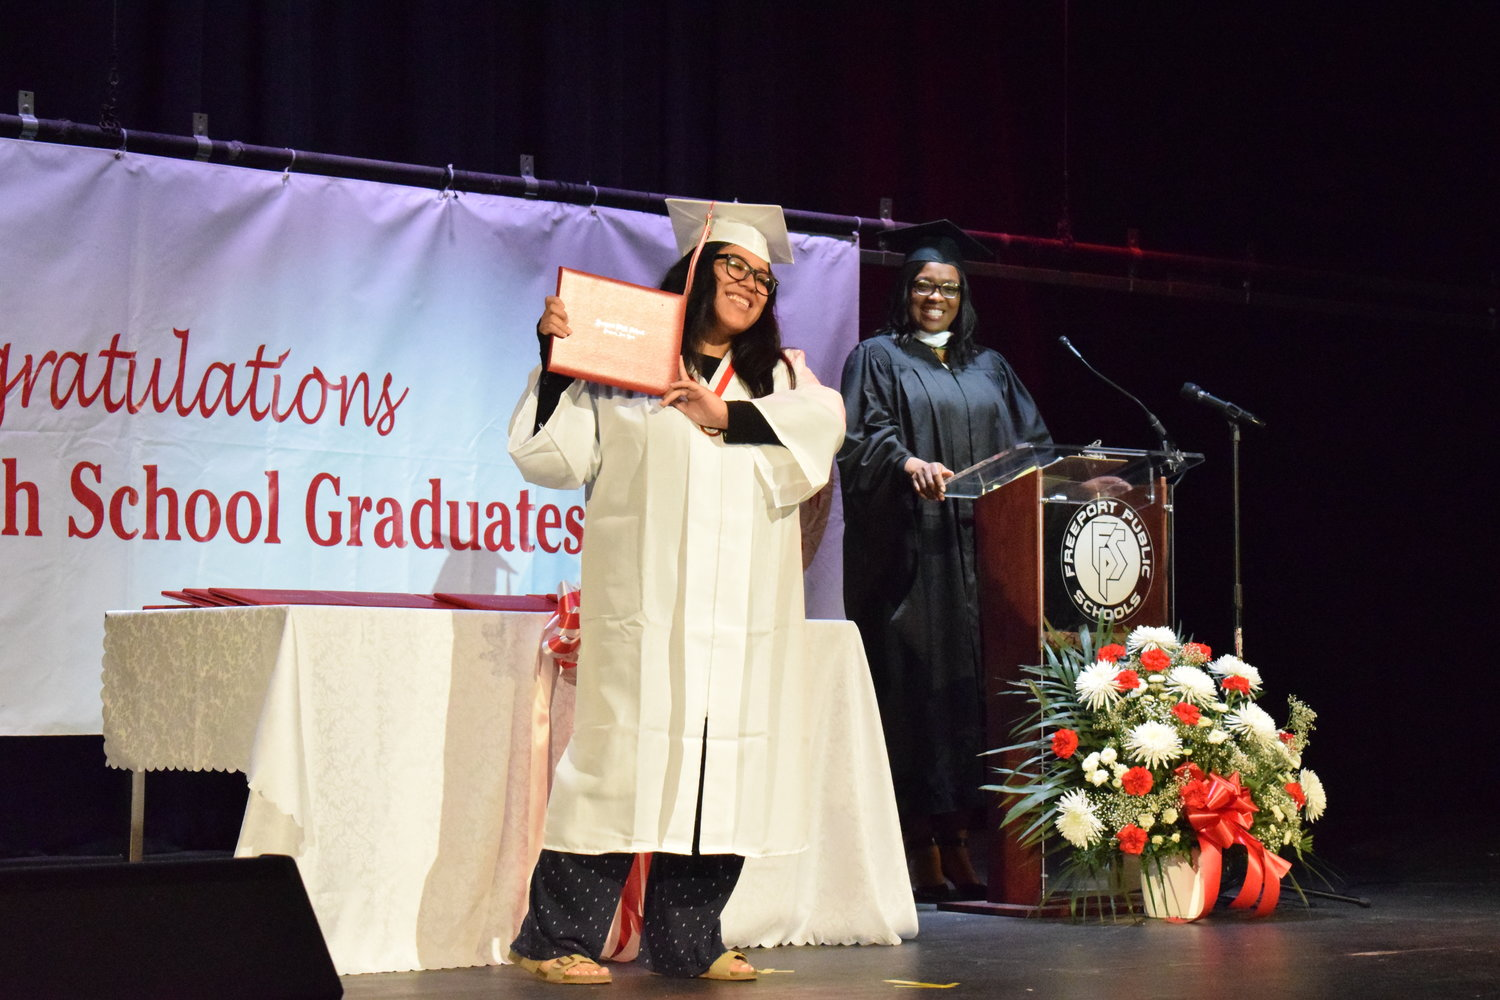 Dayley DeLeon Estevez showed off her diploma at a series of ceremonies at the Freeport High School set to honor the Class of 2020.